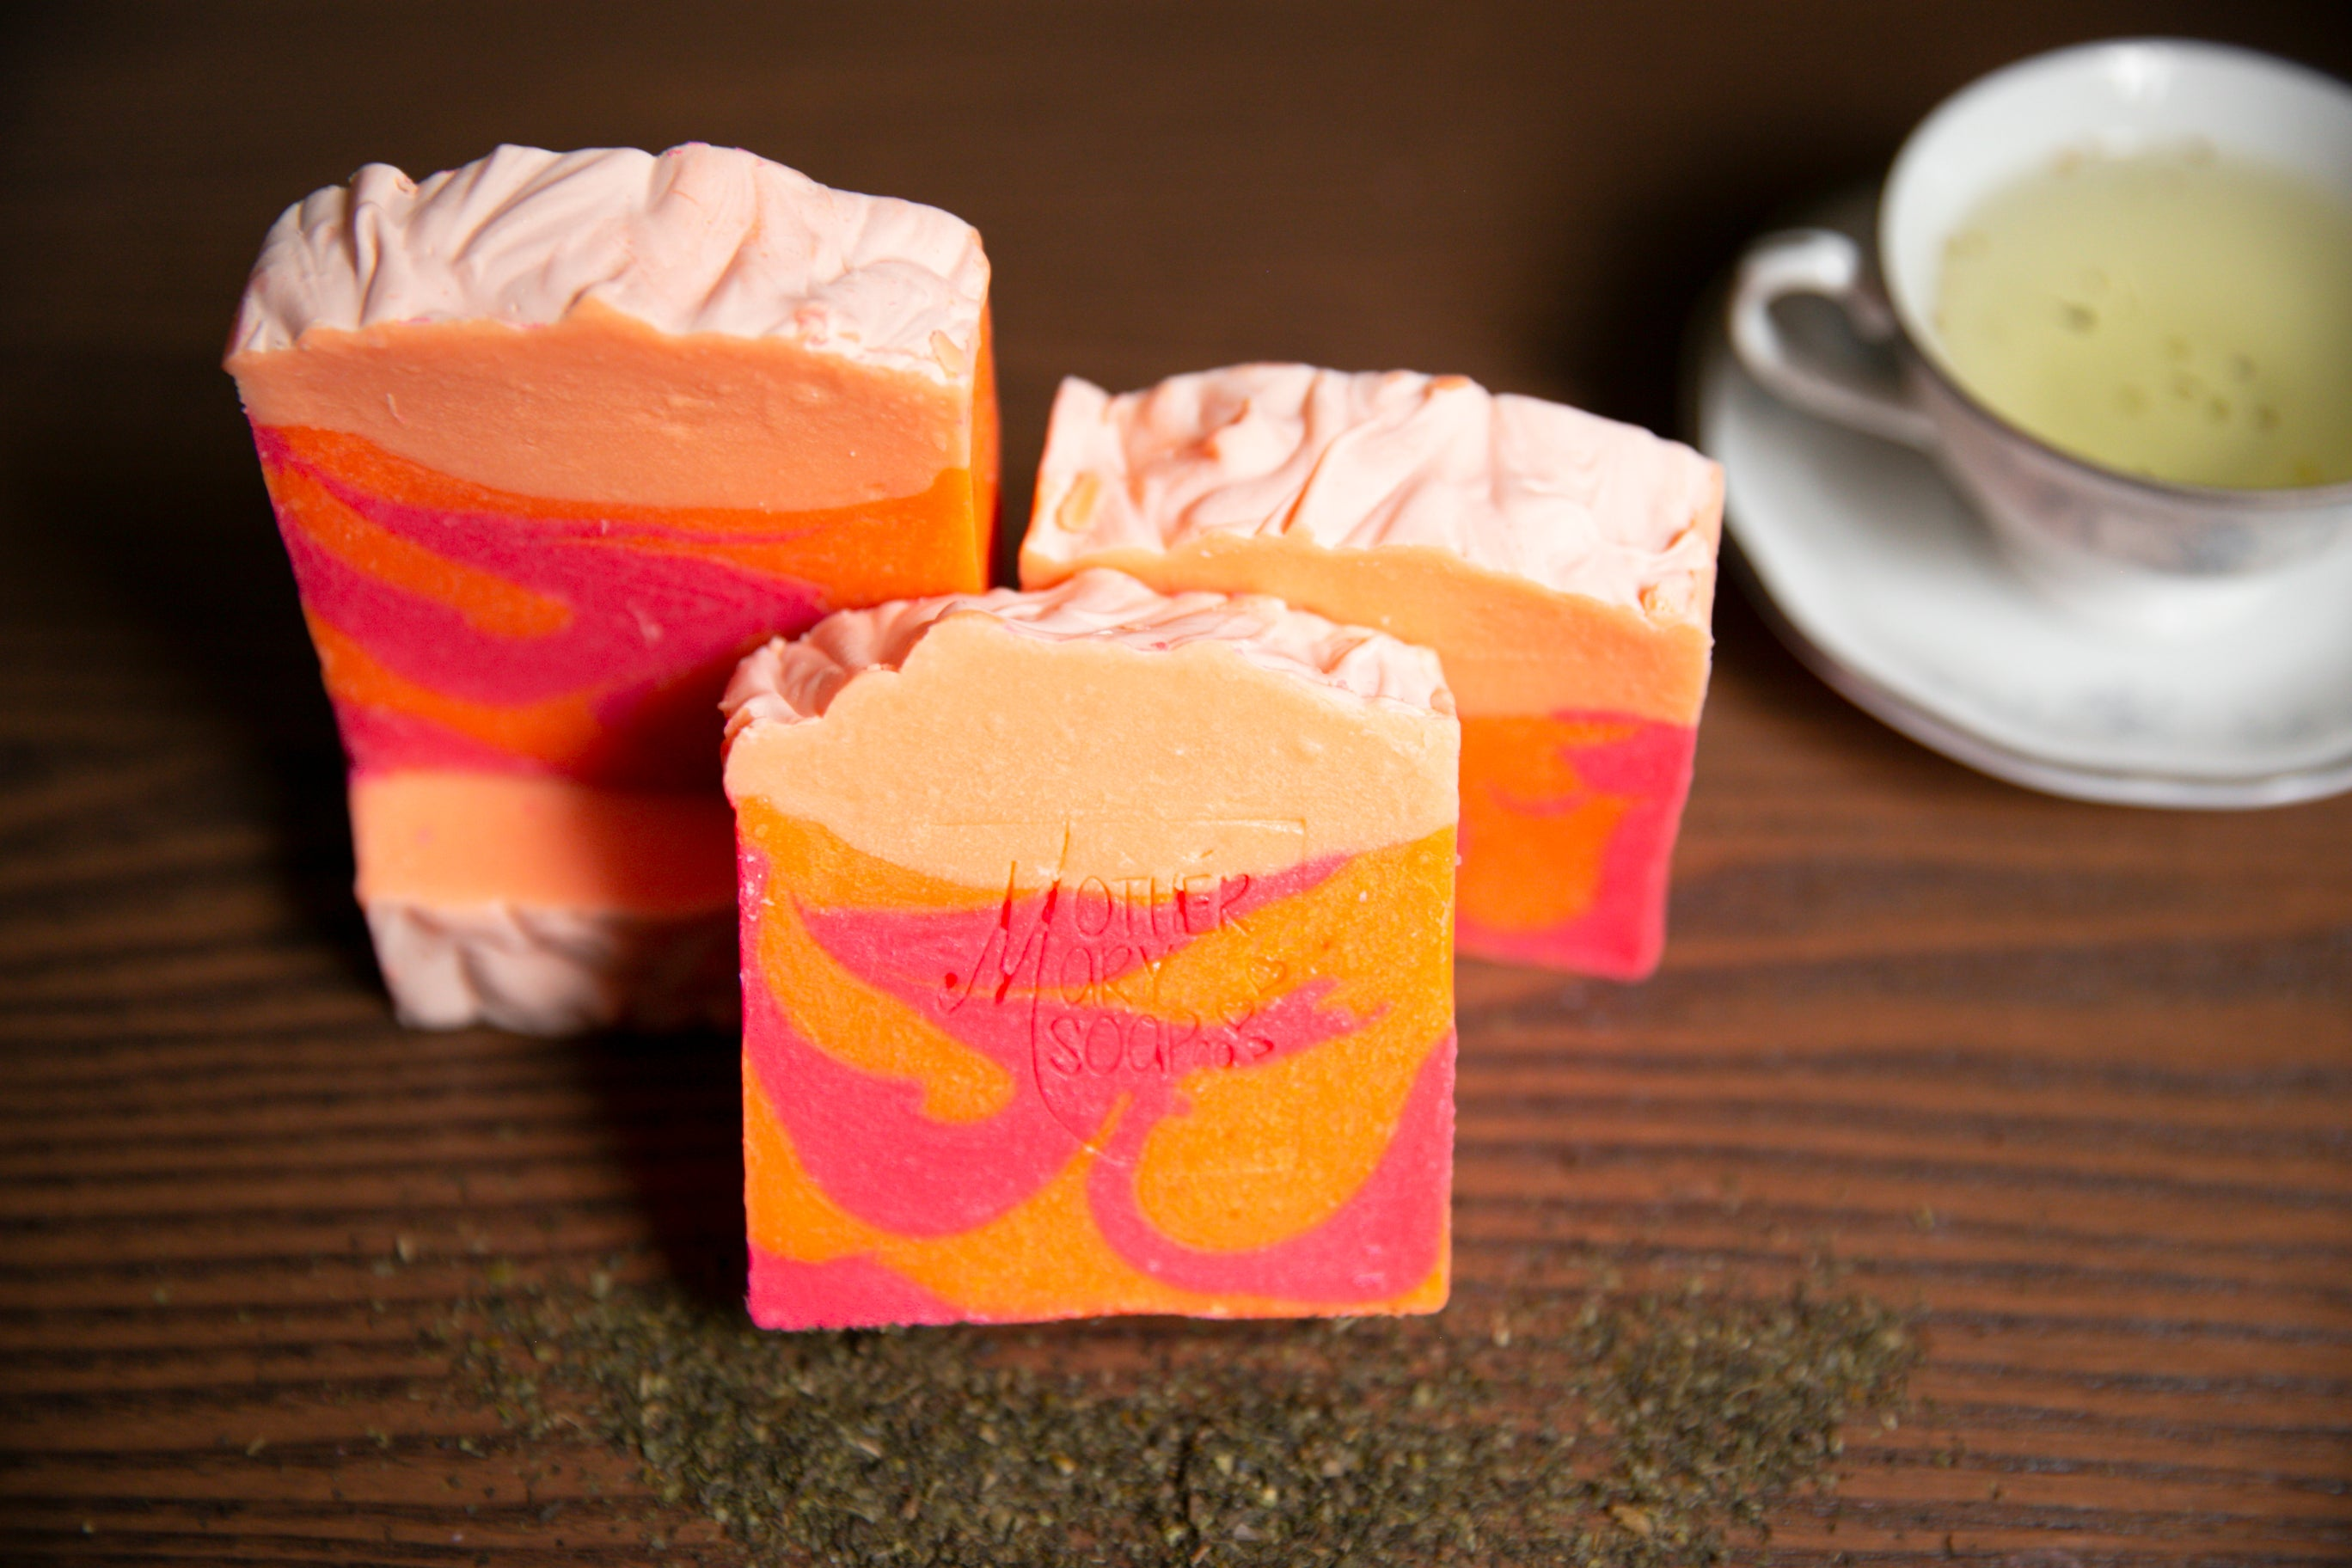 Grapefruit and Green Tea Soap